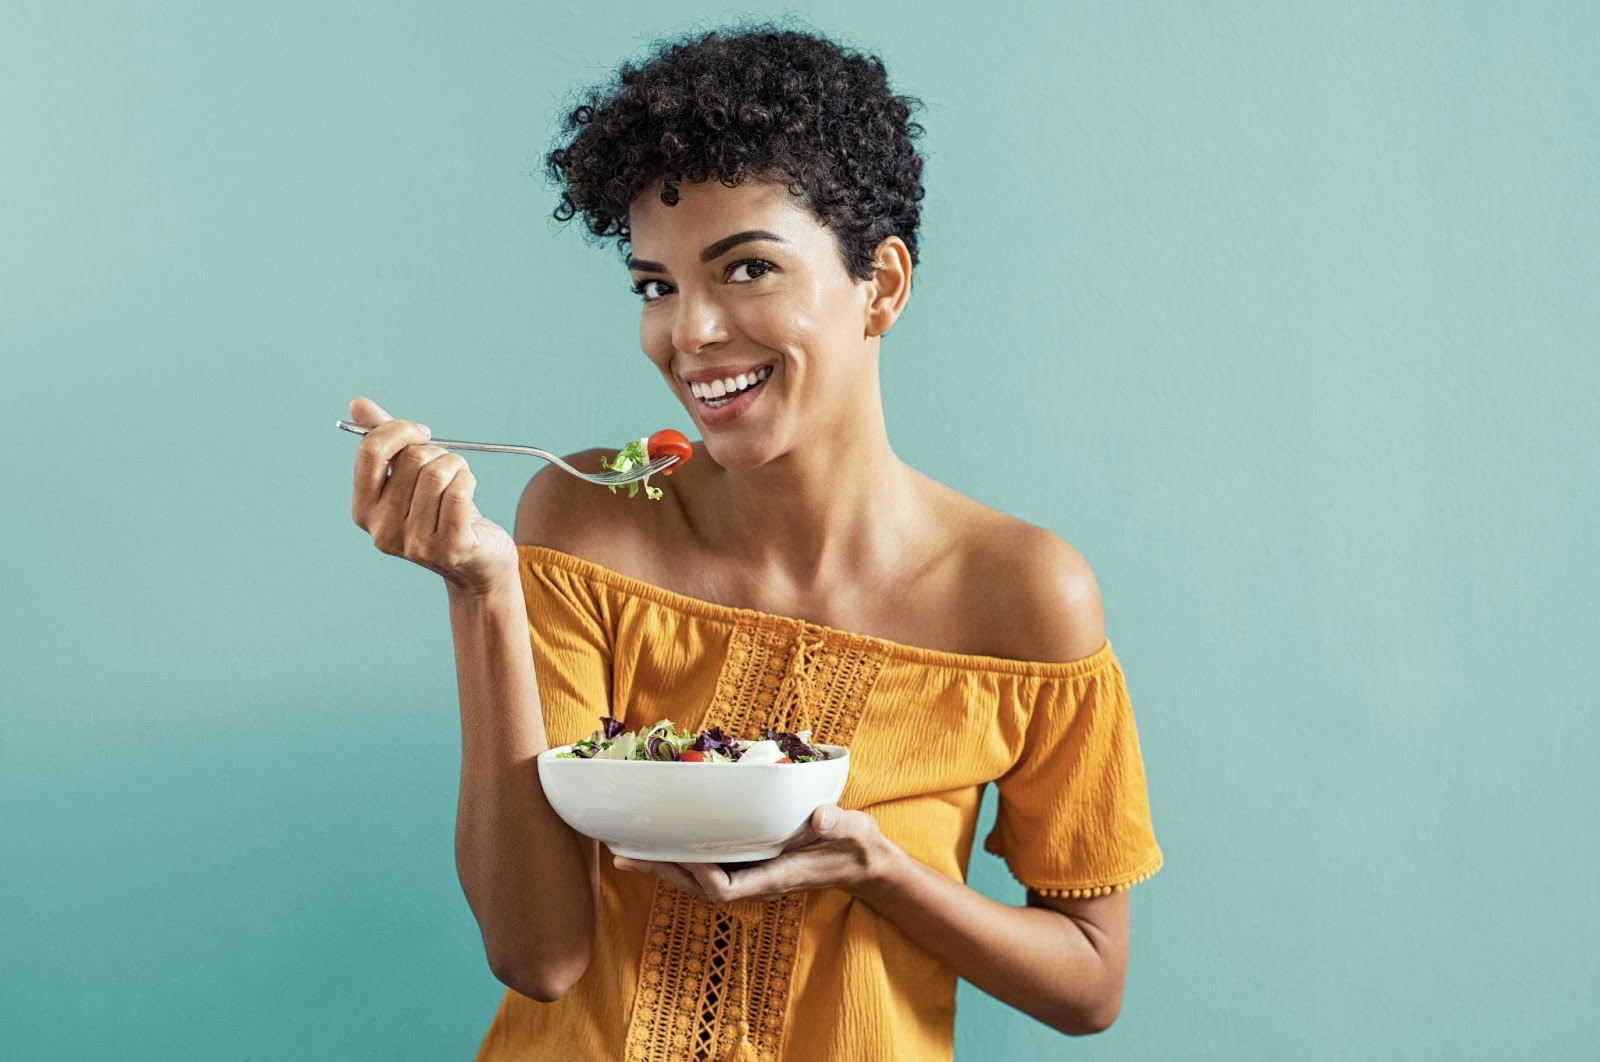 ulcerative colitis vs Crohns: Smiling woman eating a salad against a green background